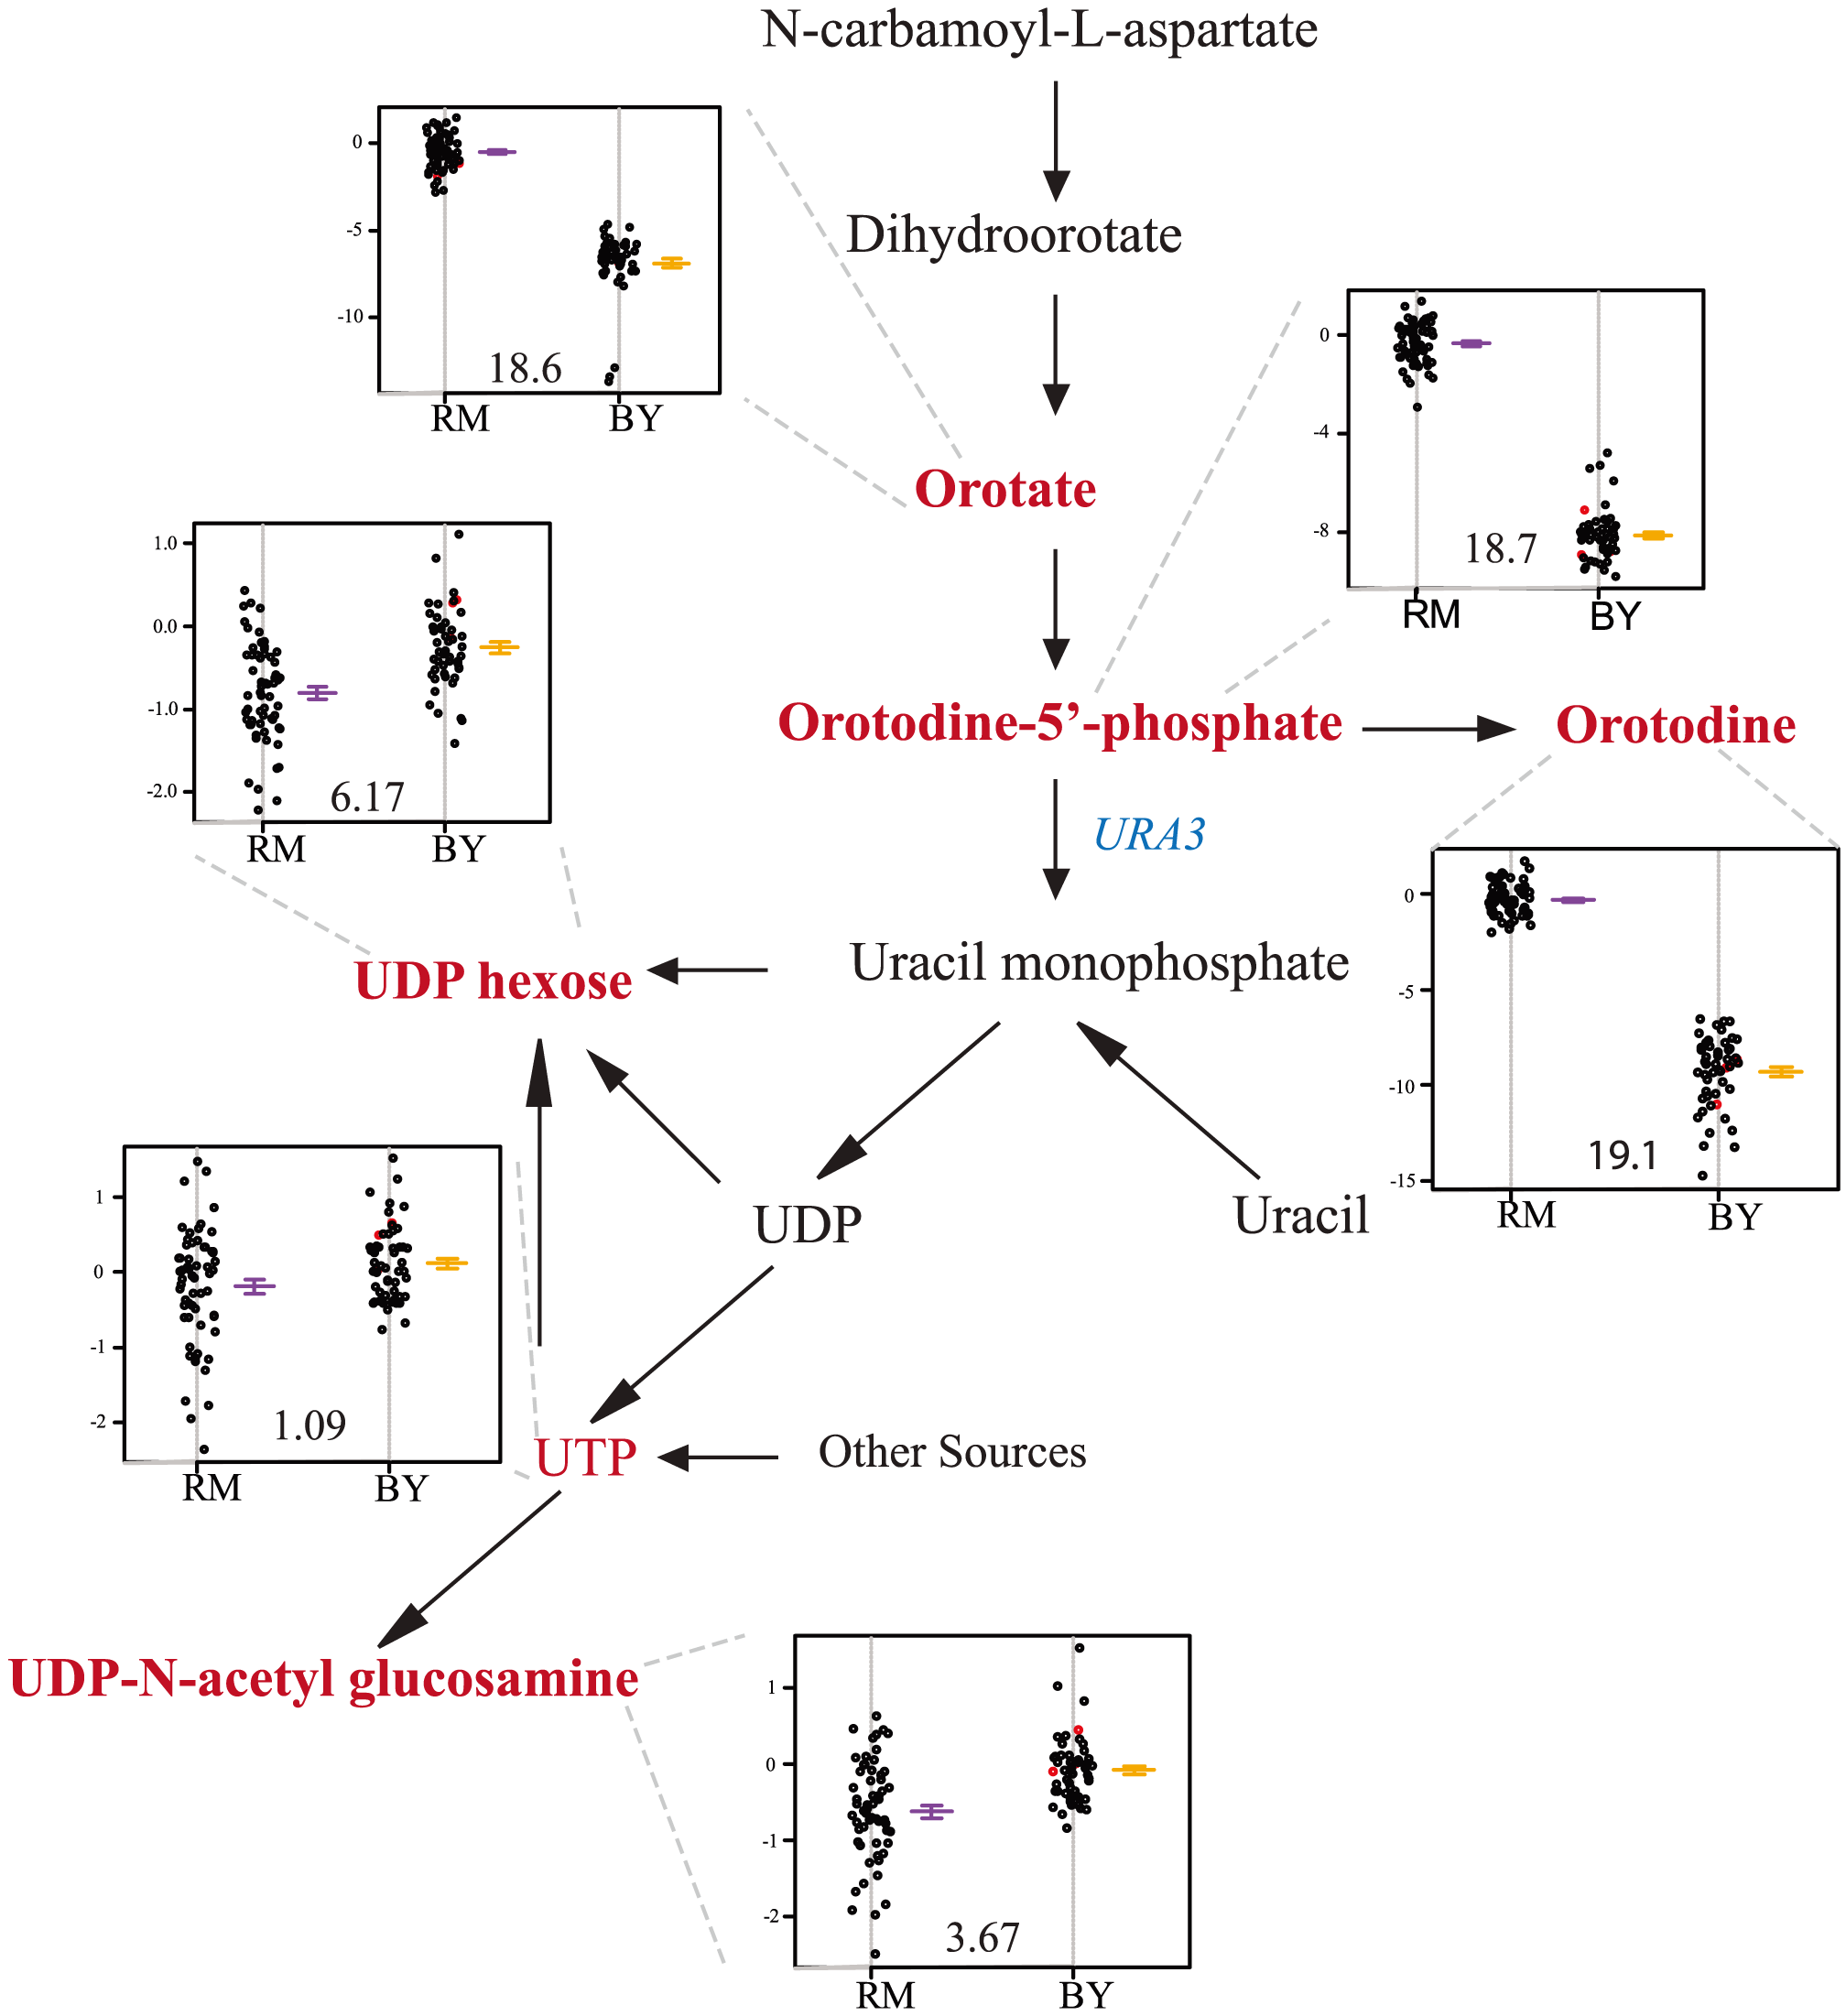 Levels of pyrimidine intermediates and products differ based on the <i>ura3</i> allele inherited.